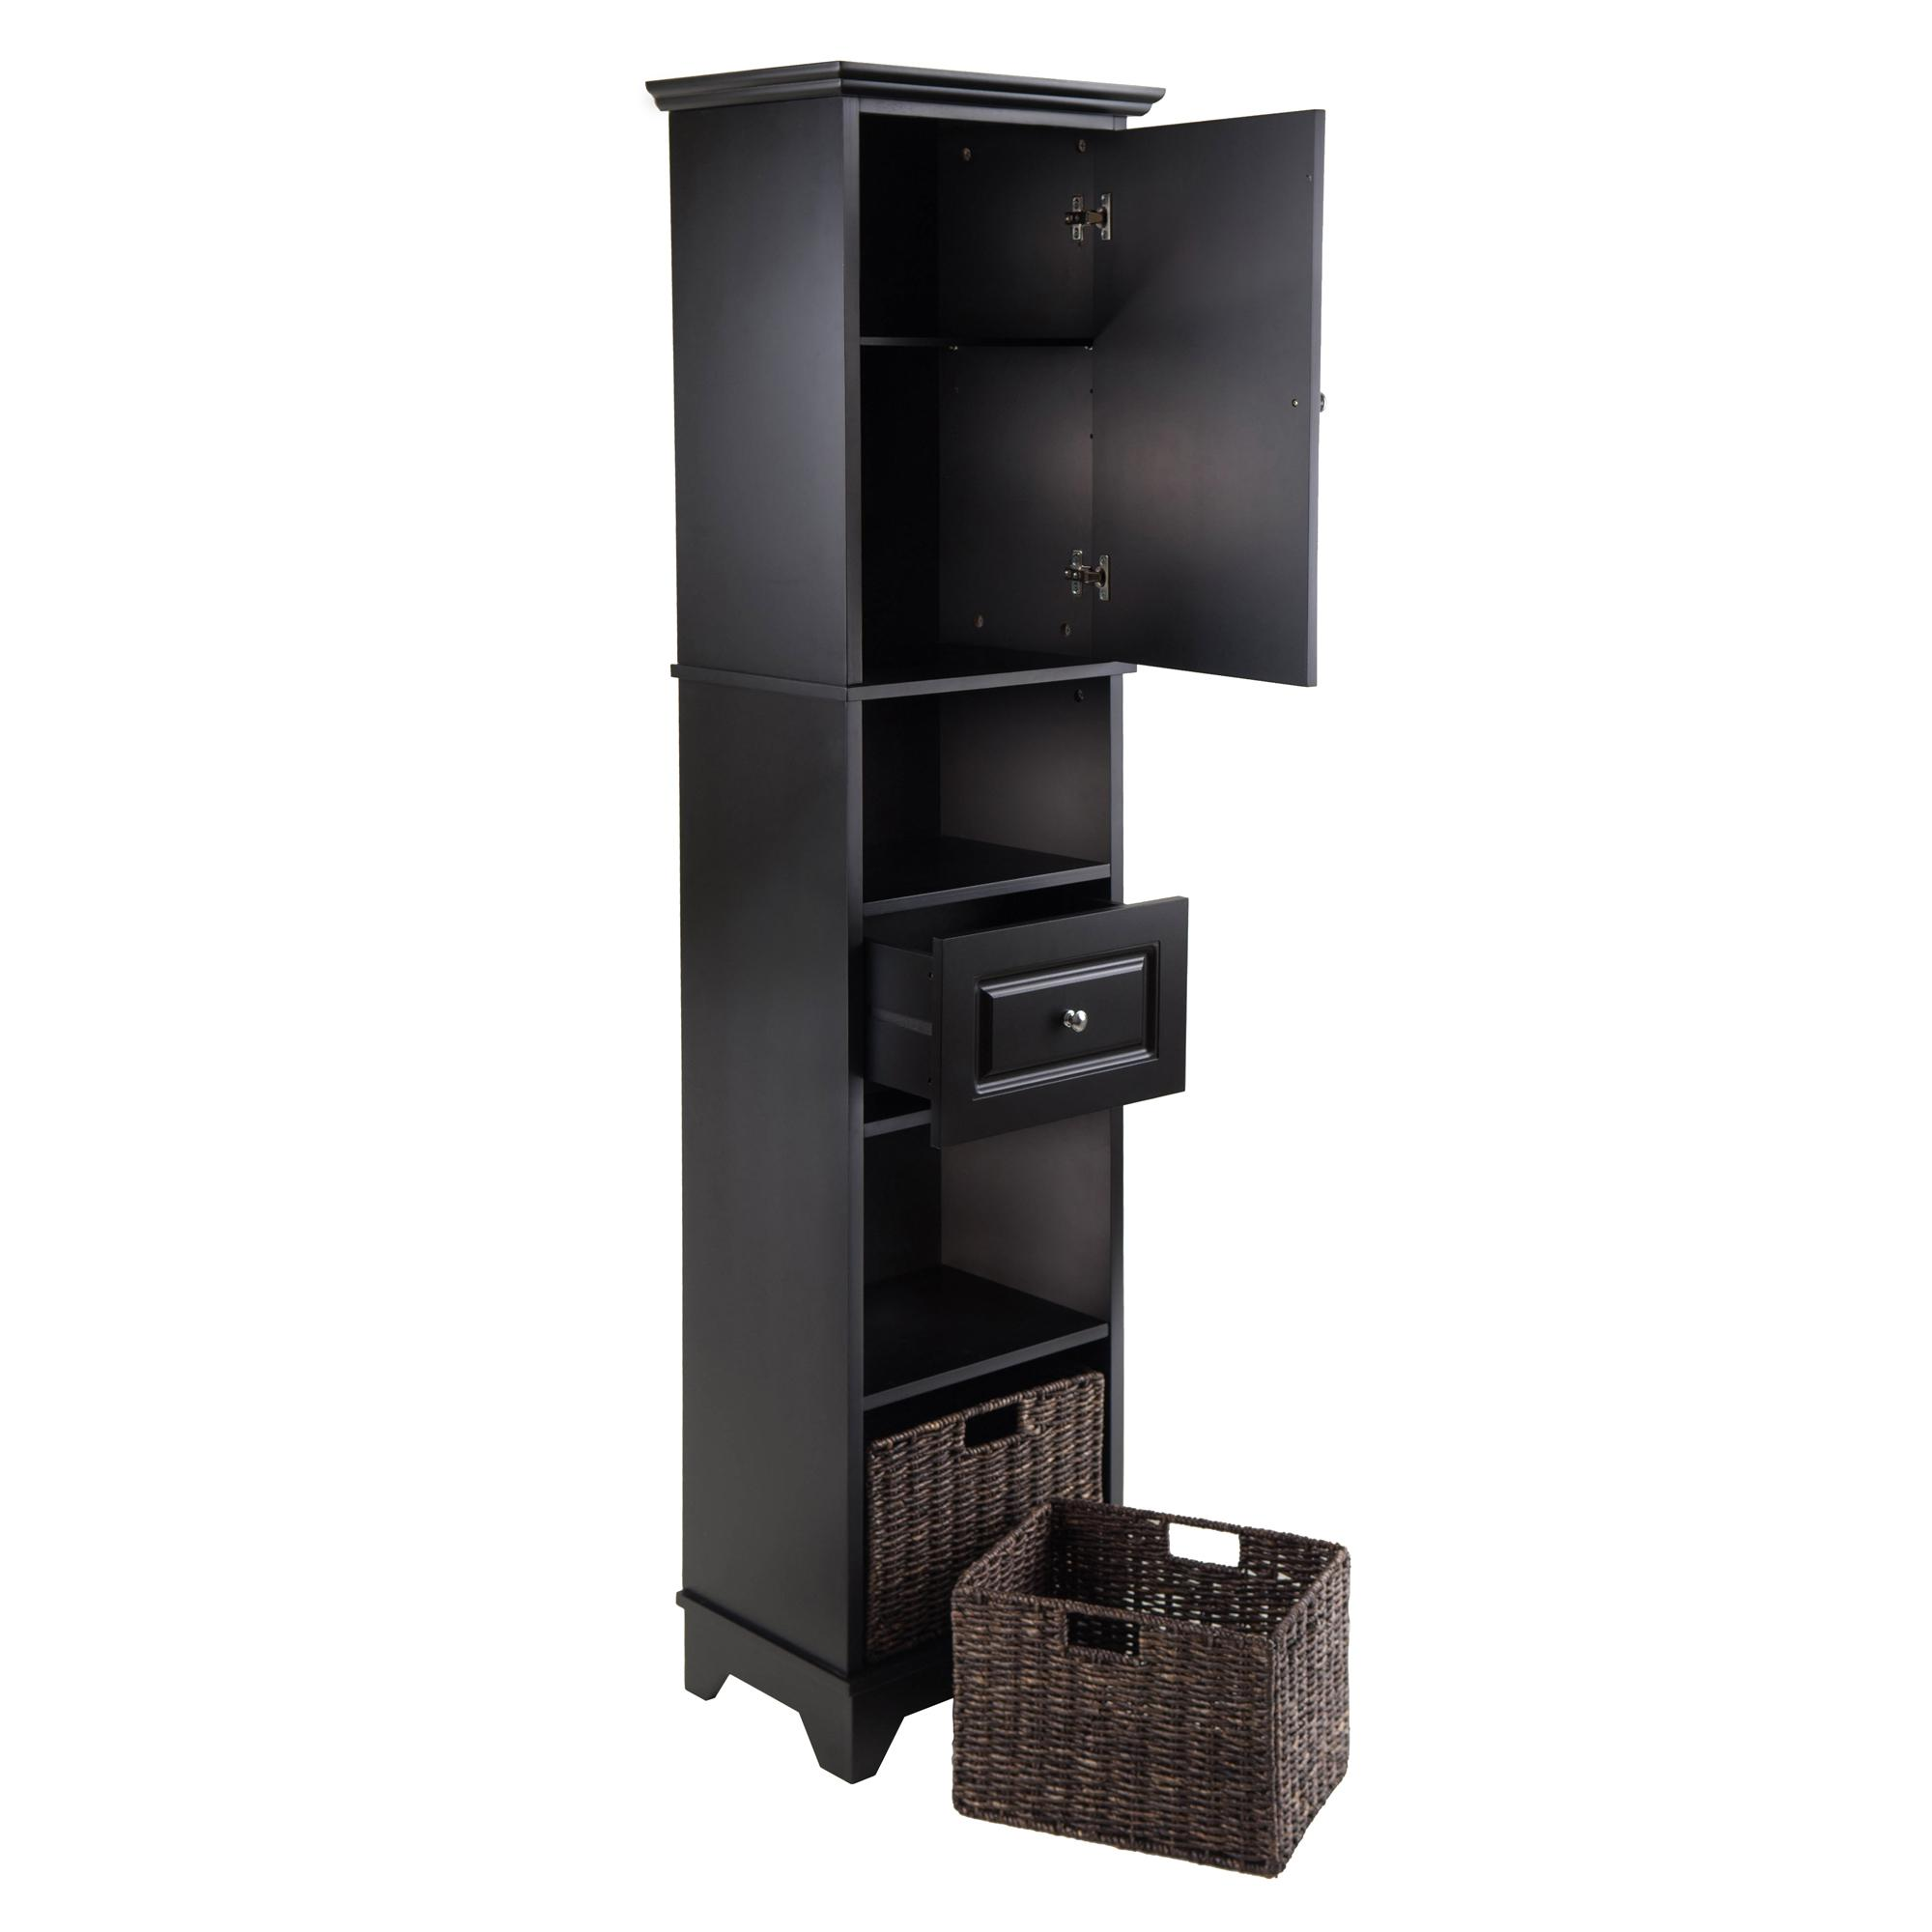 Amazon.com: Winsome Wood Wyatt Tall Cabinet with Baskets, Drawer ...